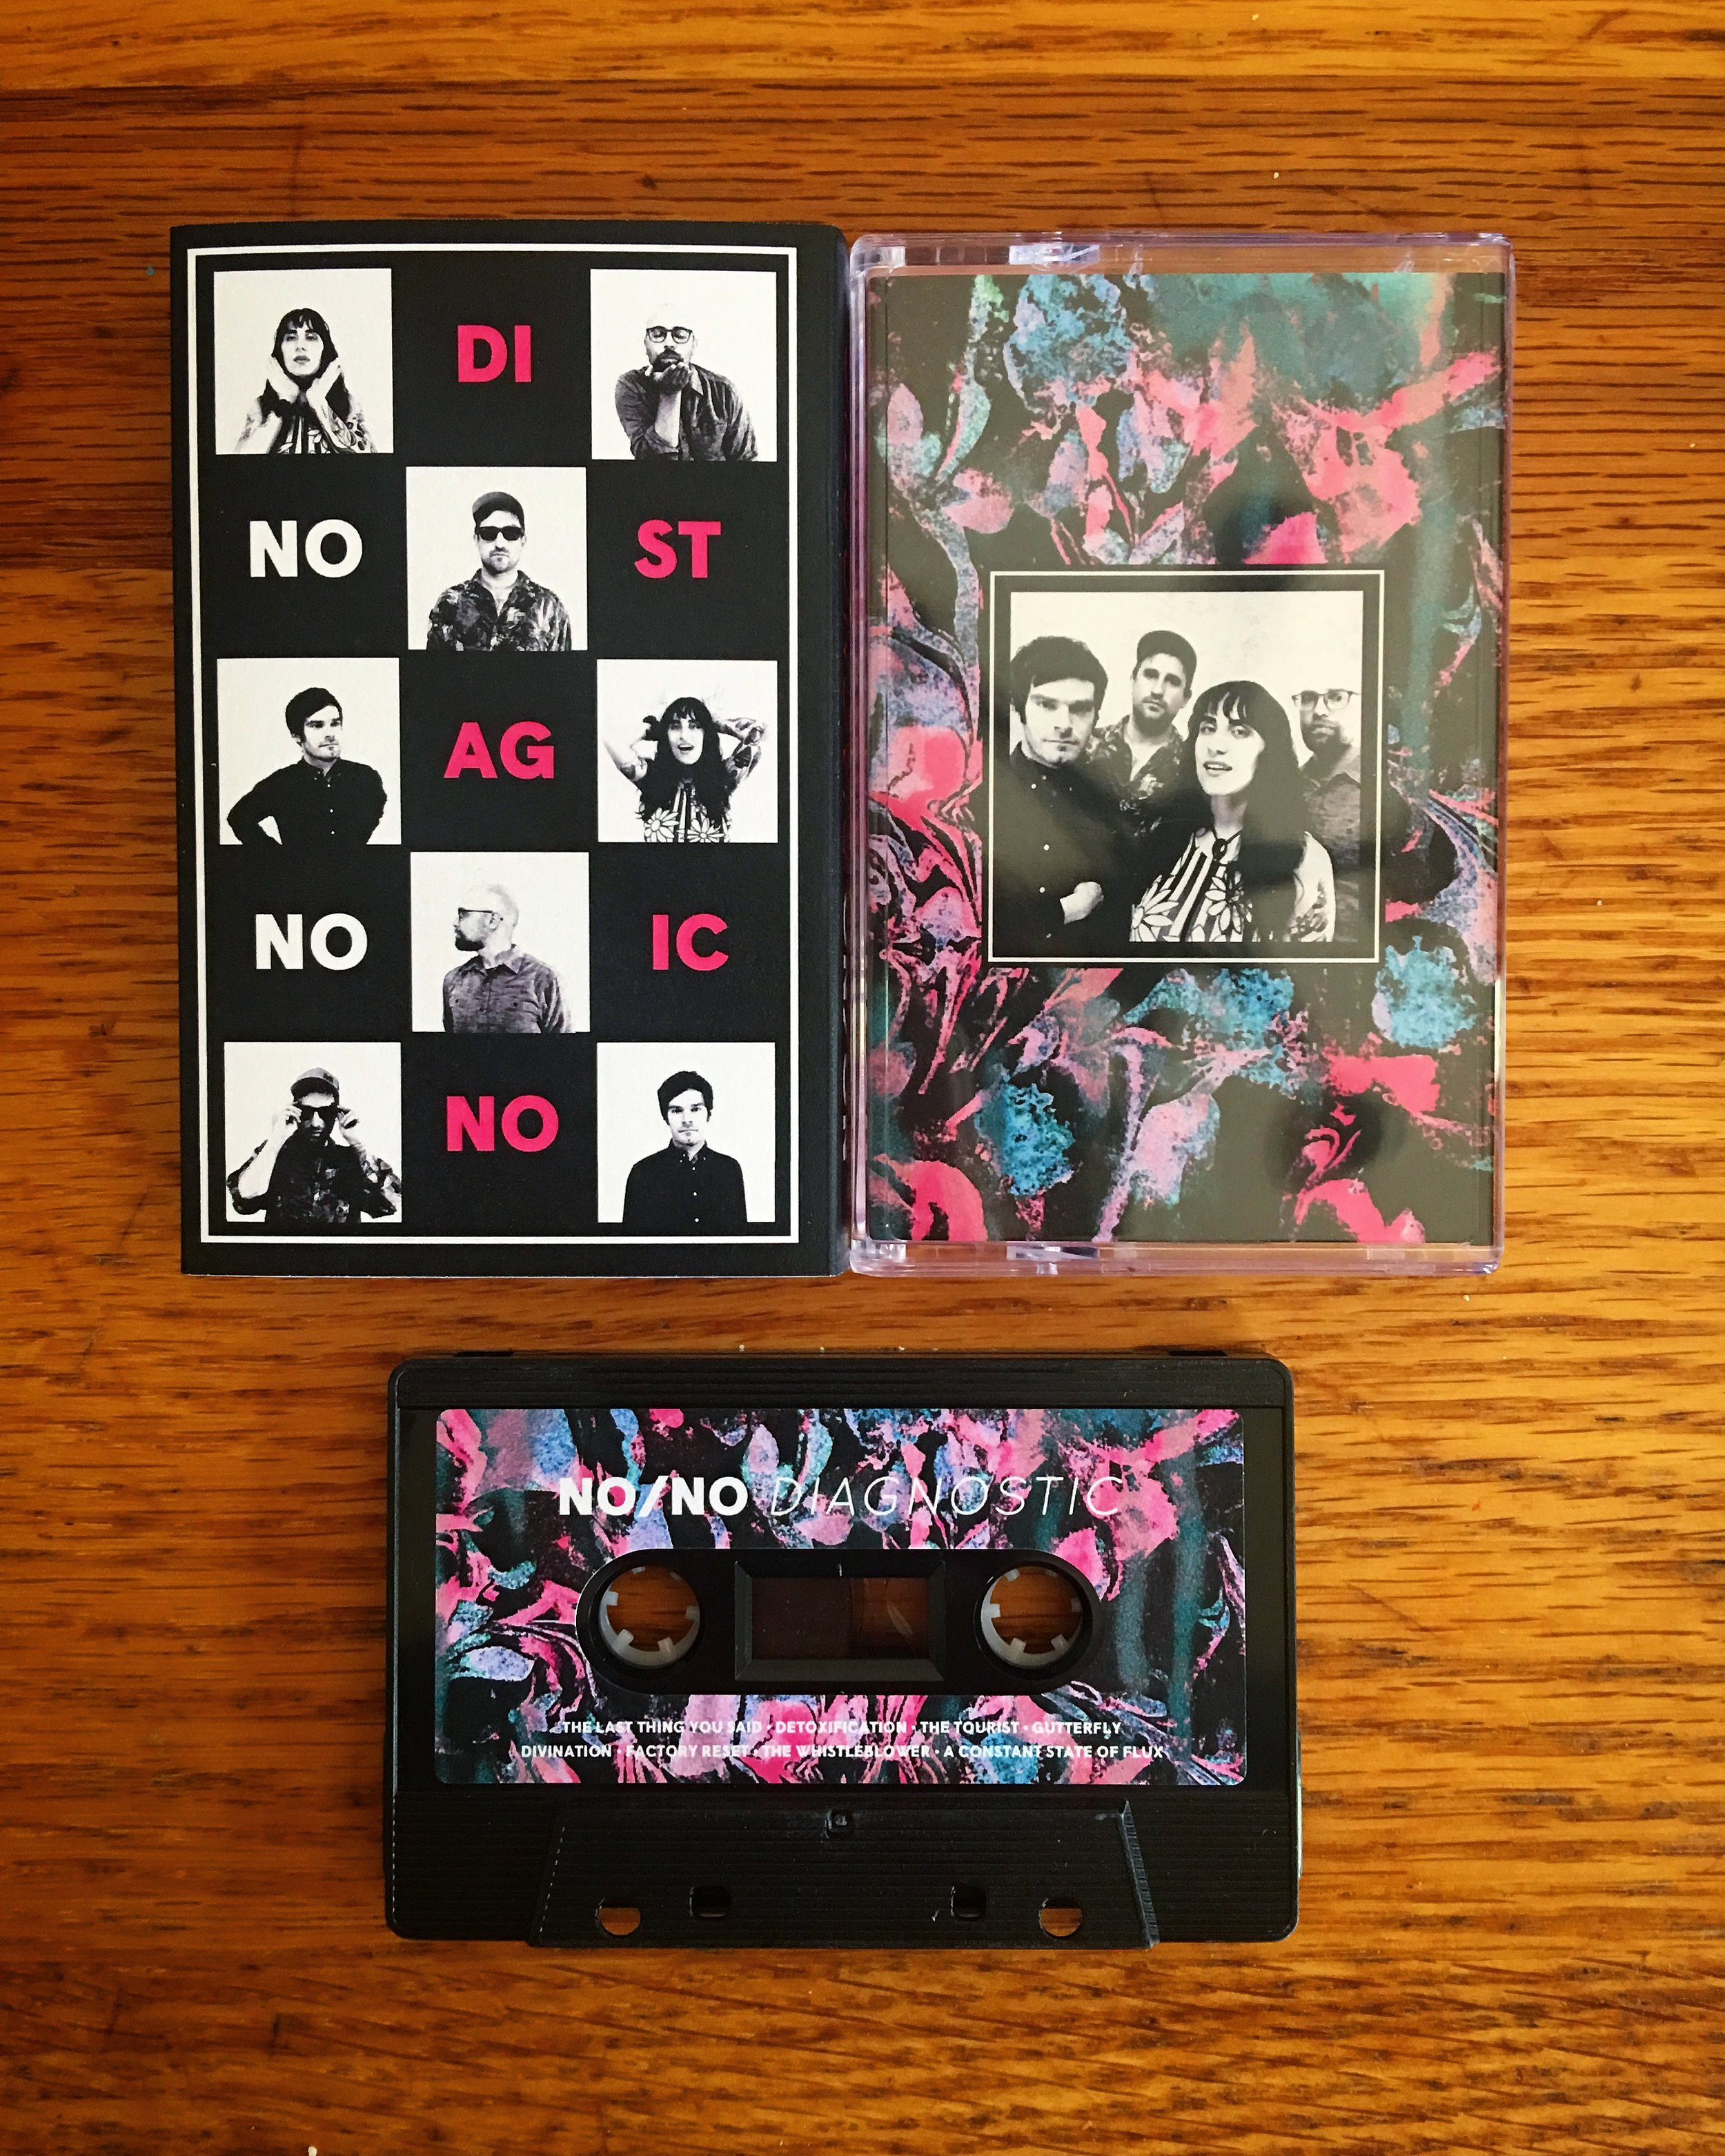 Outersleeve, cassette case, and physical cassette of NO/NO  Diagnostic